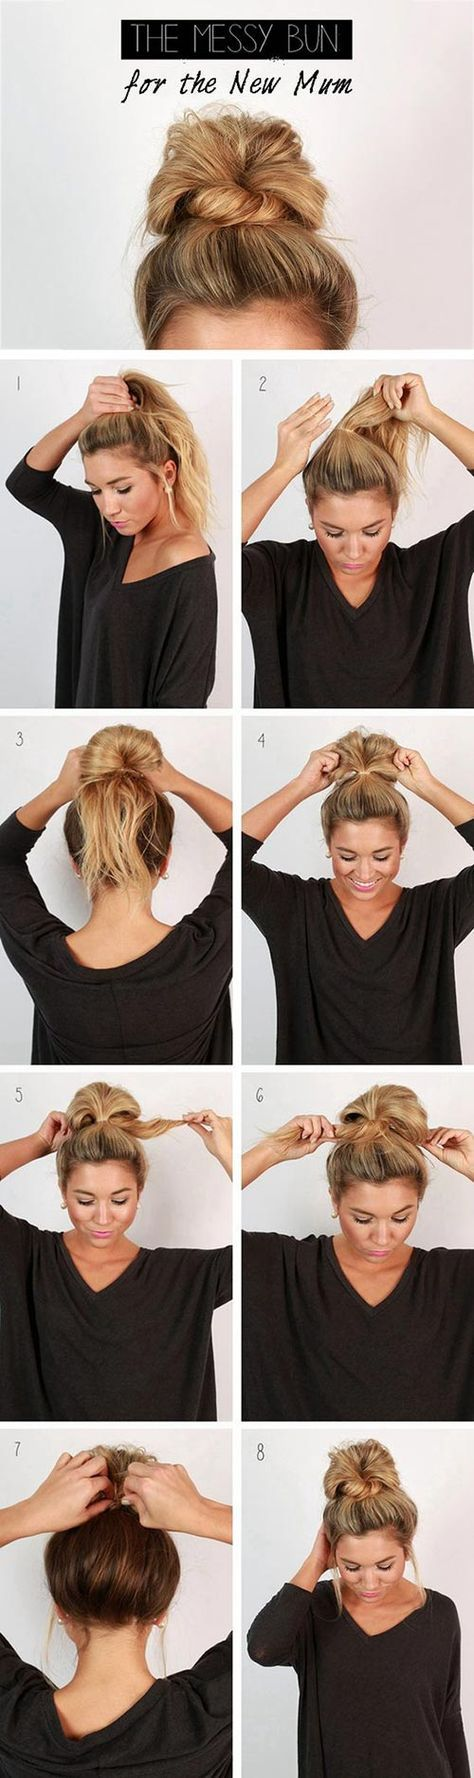 Top 10 Messy Updo Tutorials For Different Hair Lengths Hair Styles Long Hair Styles Medium Length Hair Styles